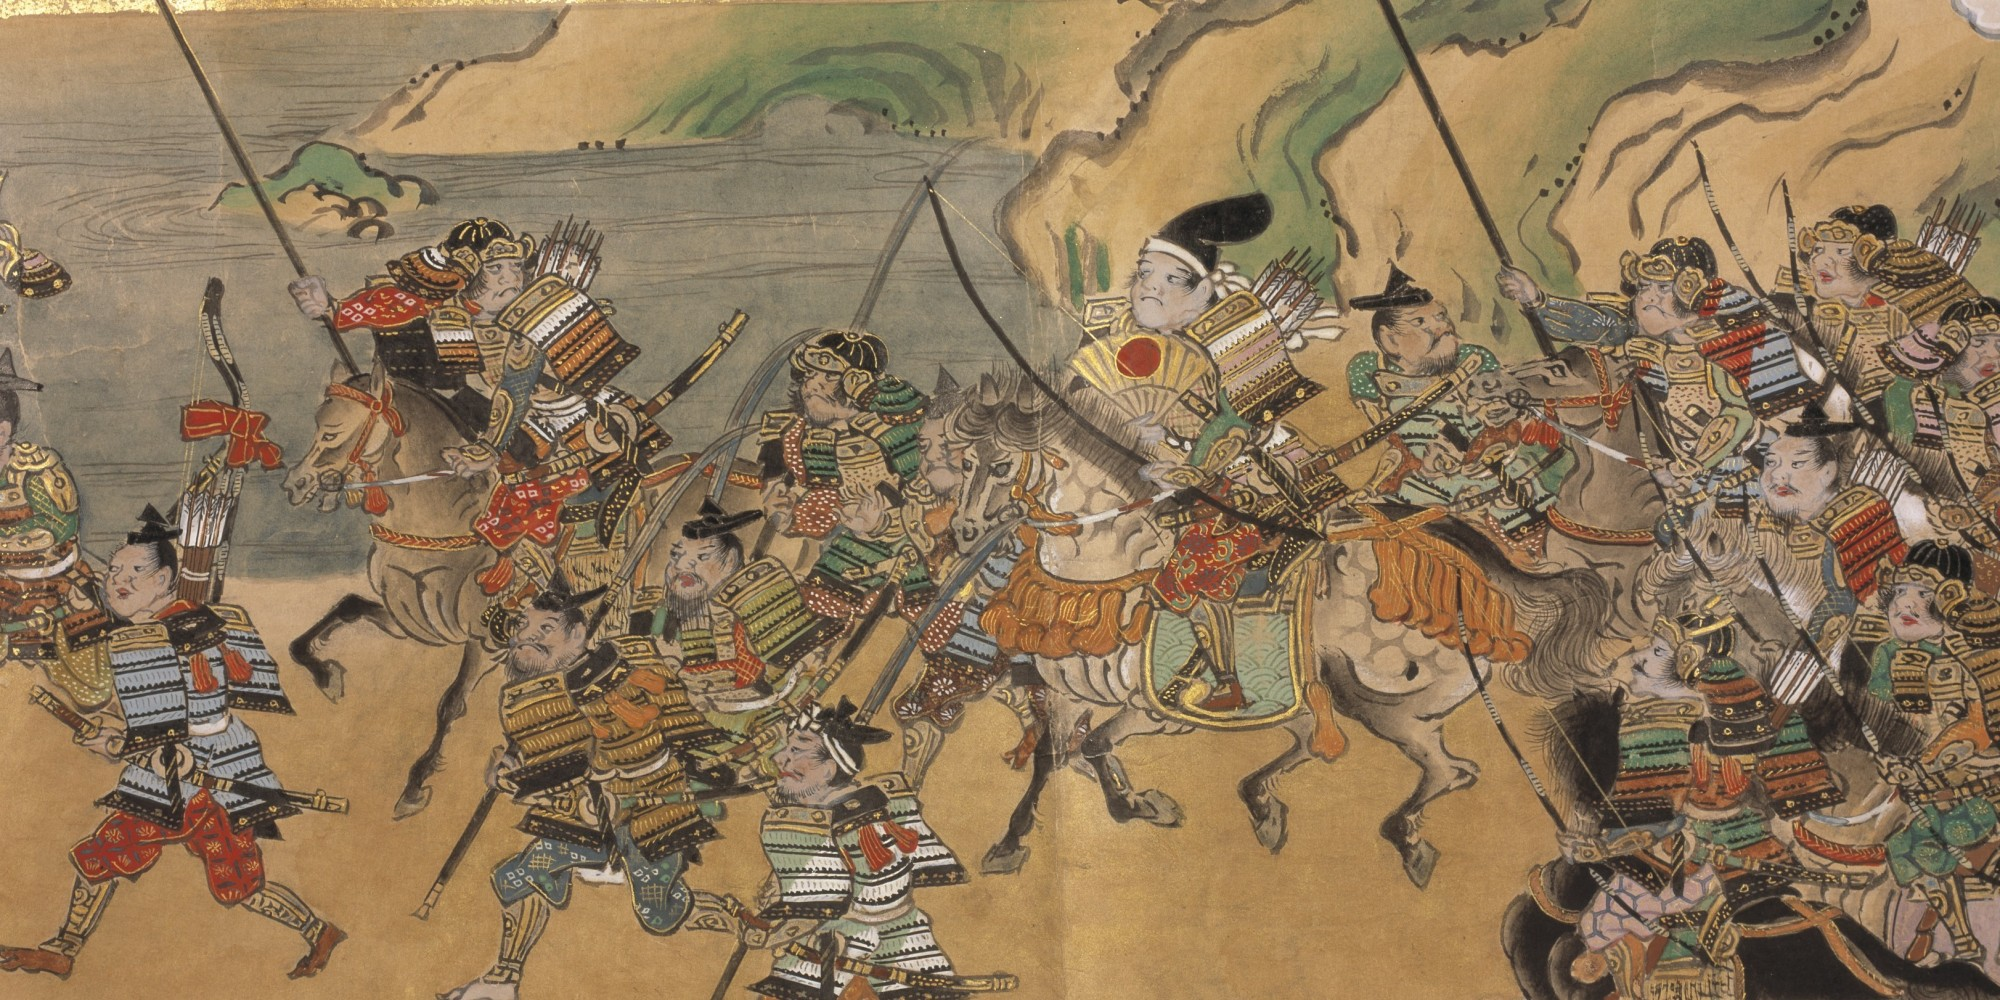 mongol empire and mongols mongol invaders Battle of ravi 1306 (mongols invasion of india) after the breakup of unified mongol empire in 1259 mongols: zenith of empire.